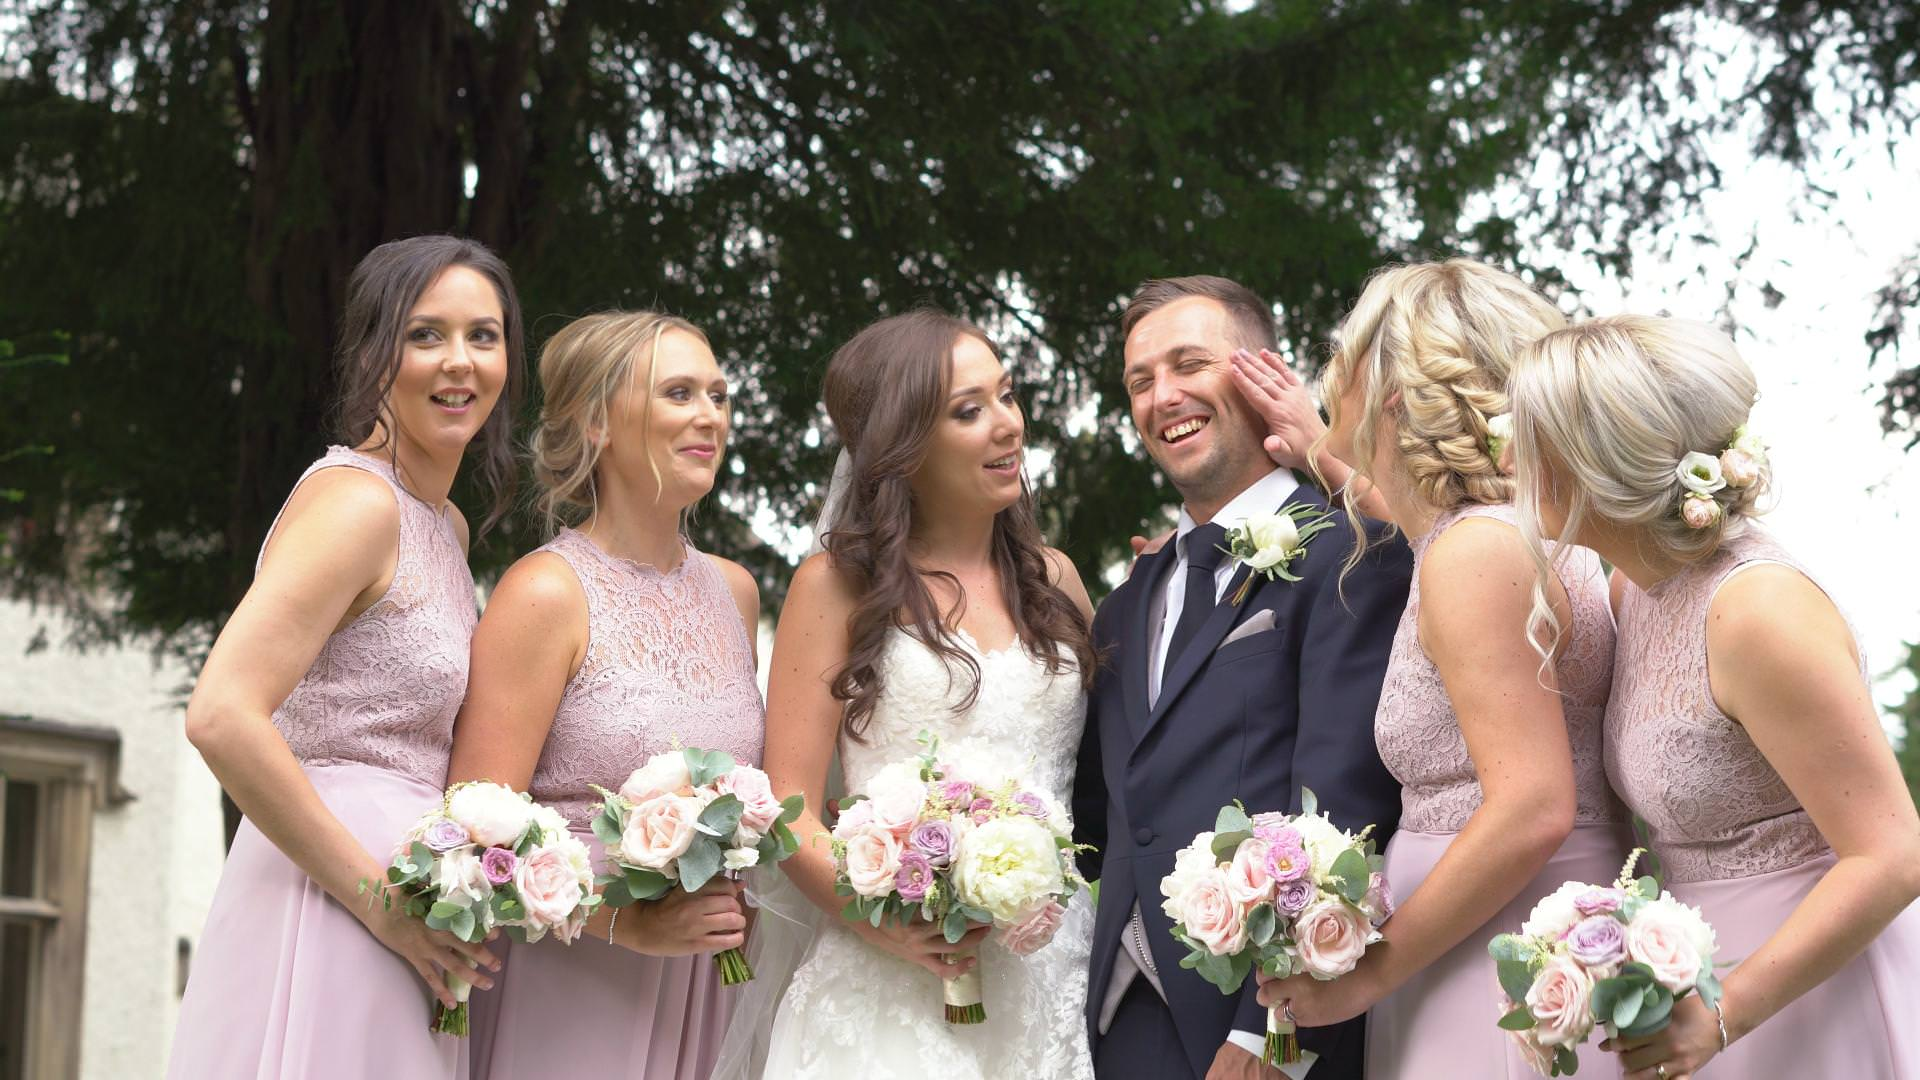 the groom laughs as the bridesmaids fuss over him during wedding photos at Mitton Hall